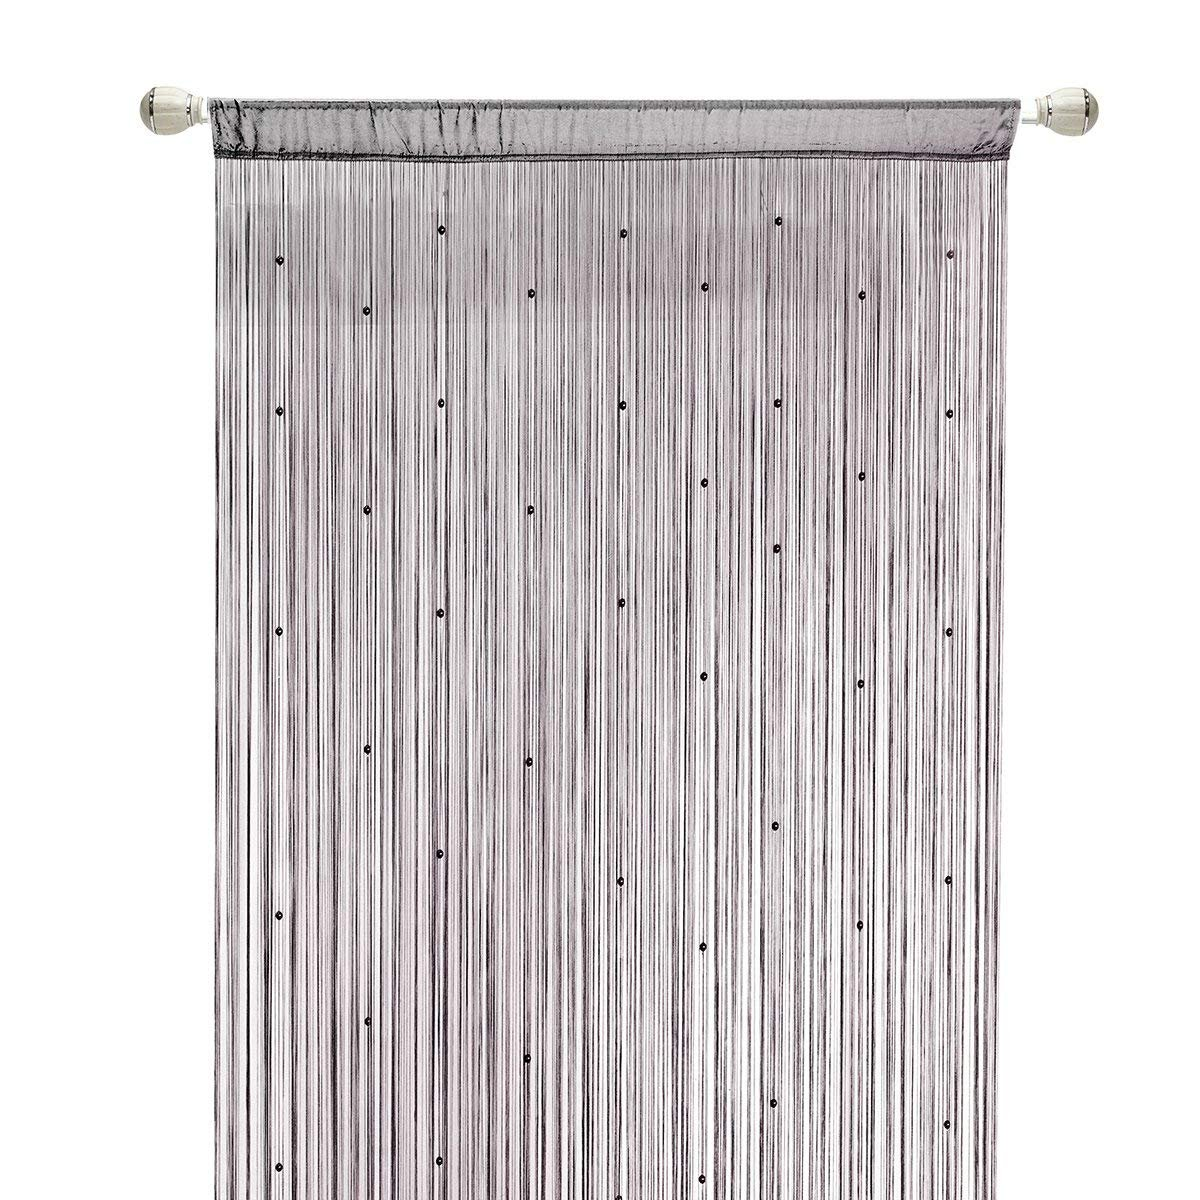 How to make an original dense curtain for a niche in the wall